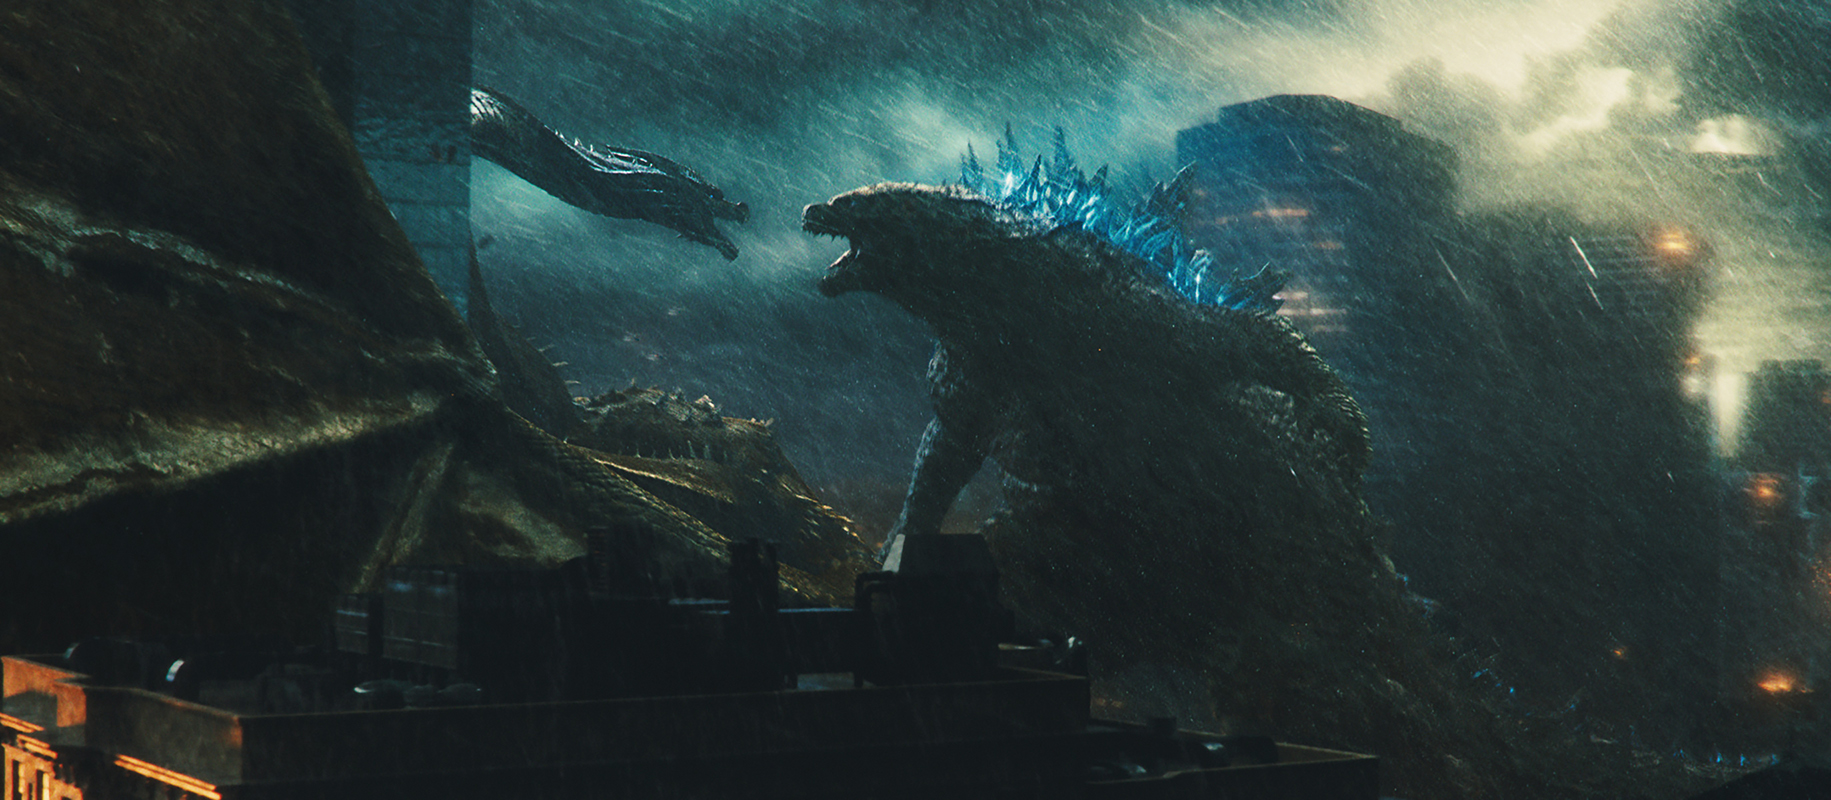 Film Review: 'Godzilla: King of the Monsters' is monstrously bad